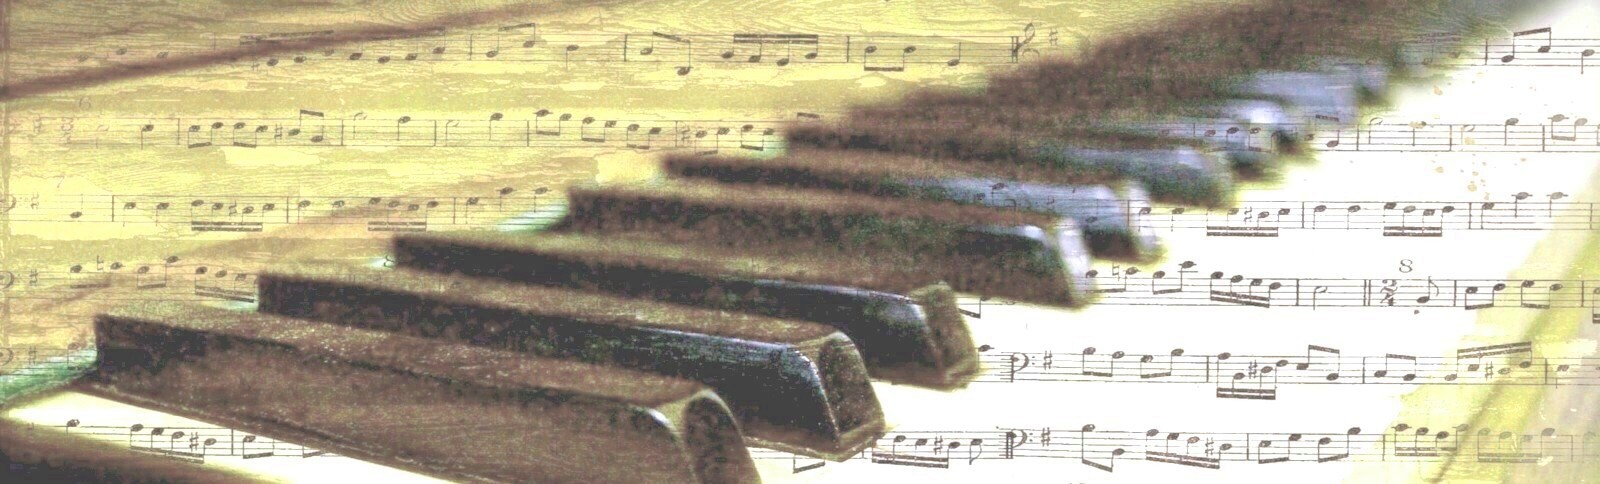 piano with music notation